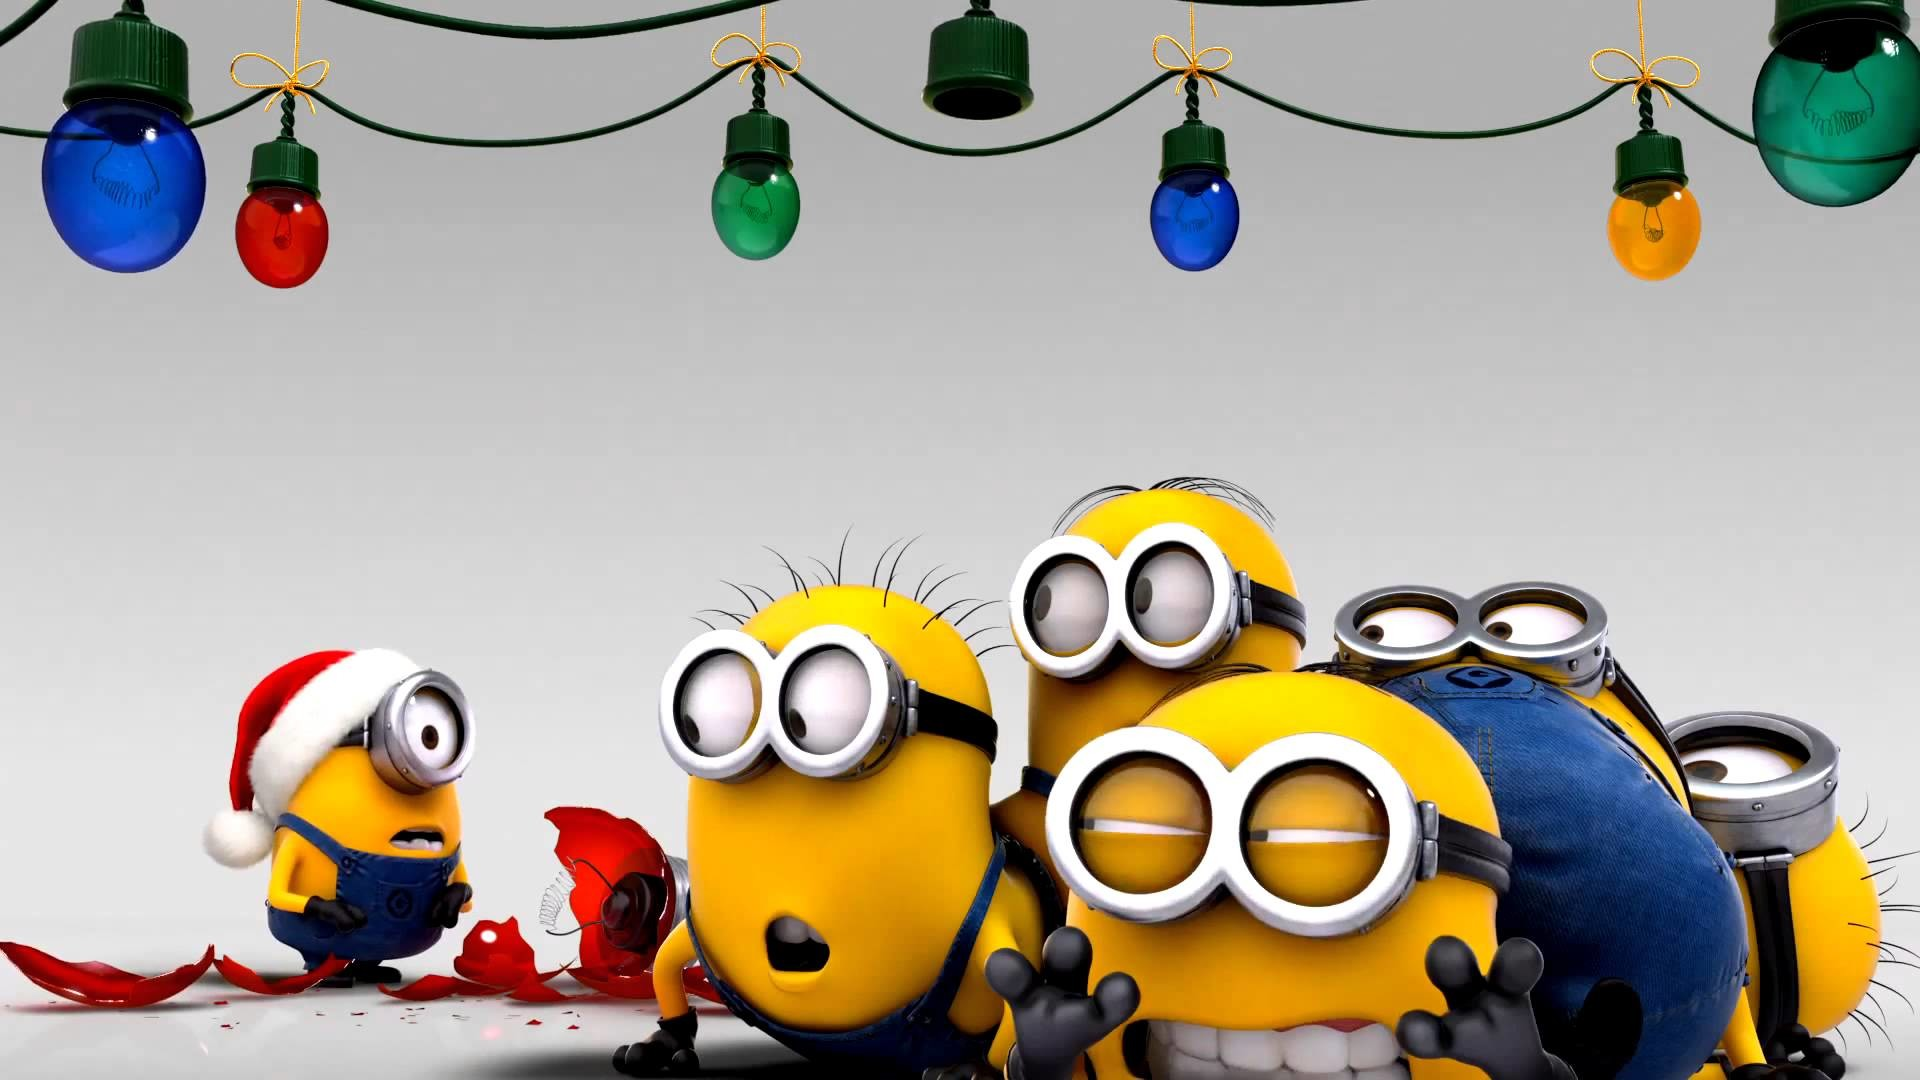 Res: 1920x1080, Minions-Despicable-Me-Christmas-wallpaper-wp4407445